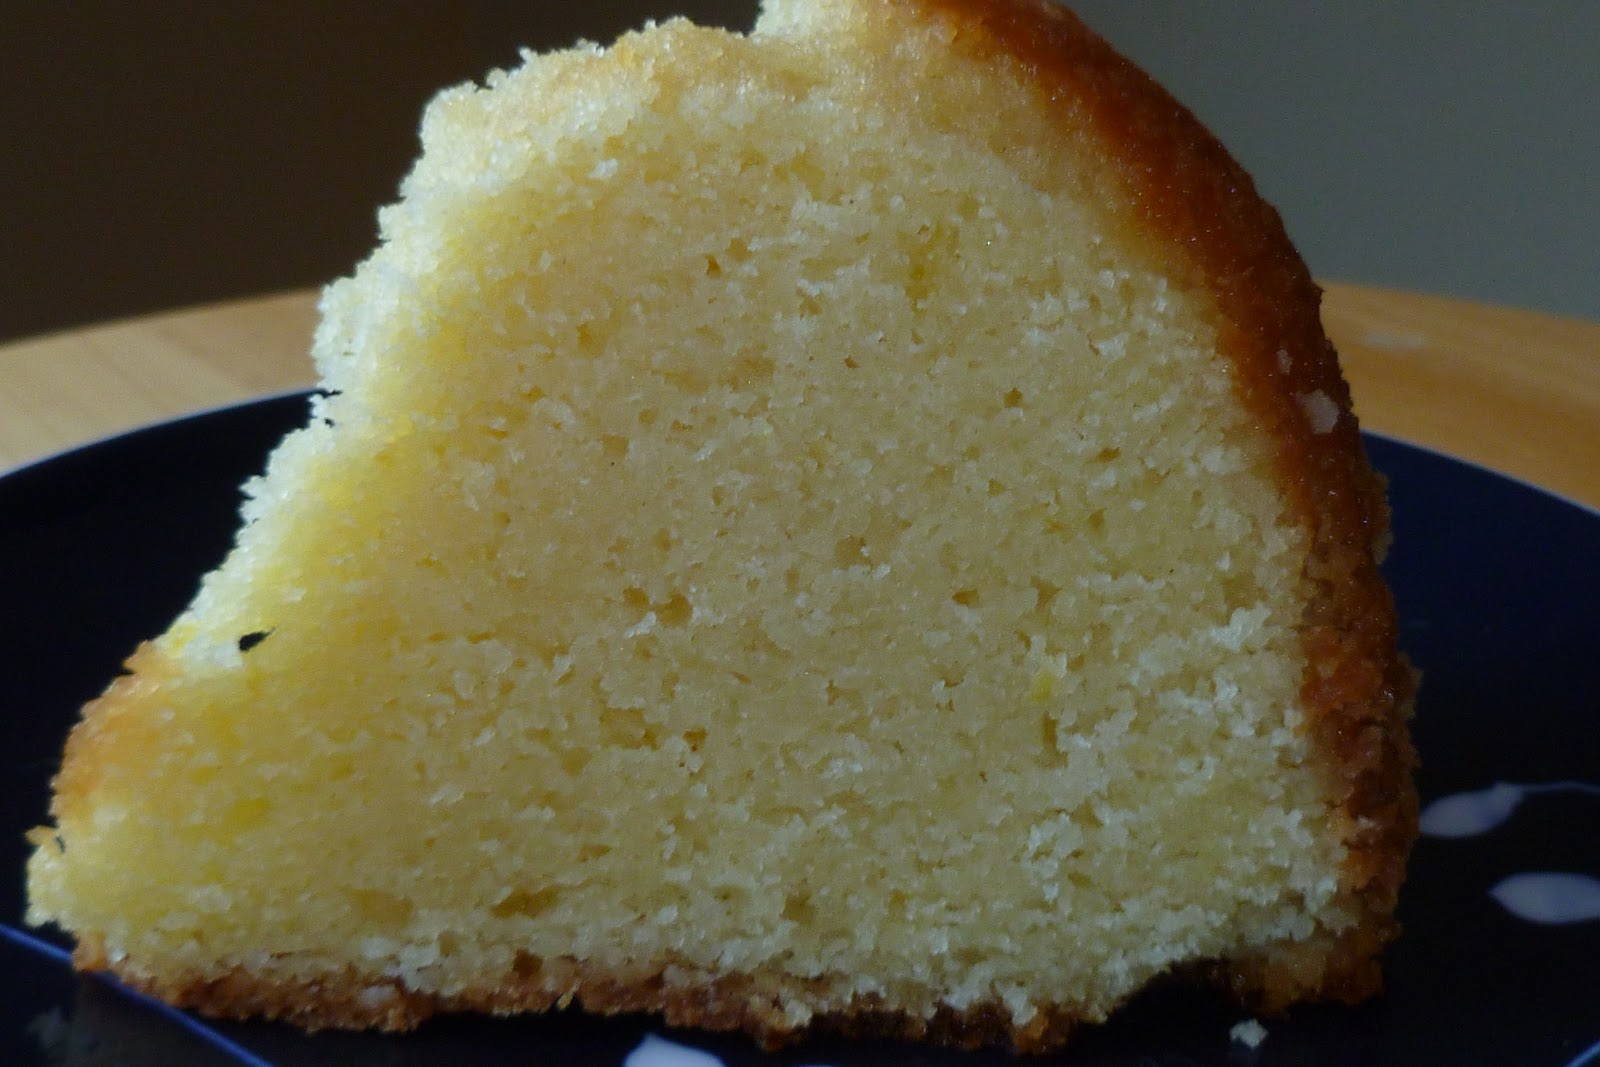 The Pastry Chef's Baking: Lemon Pound Cake